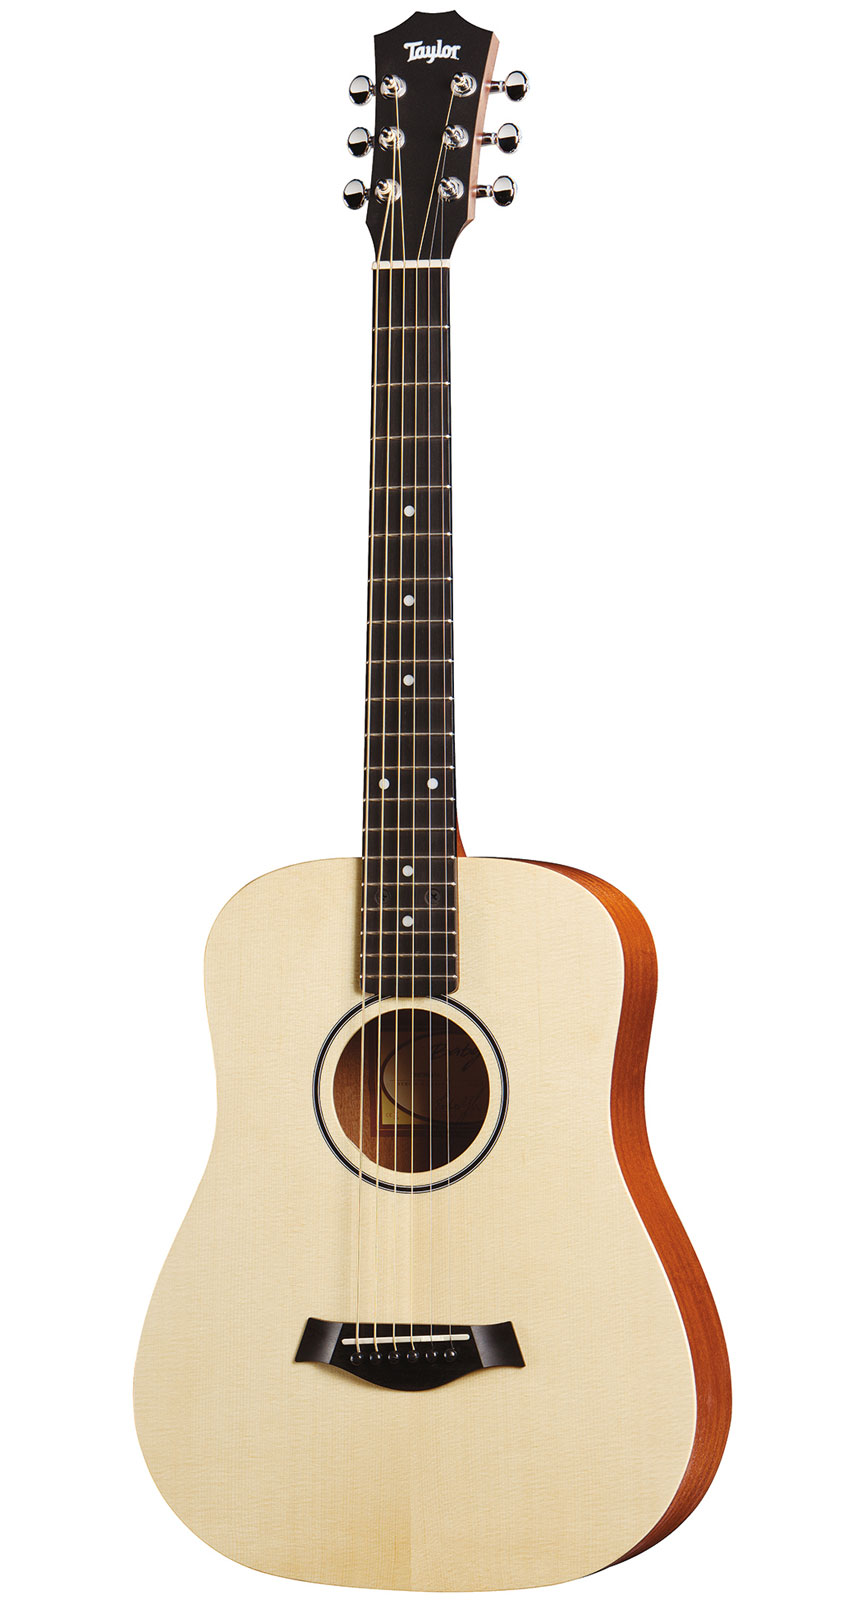 Taylor Baby Bt1 Epicea Sitka + Housse